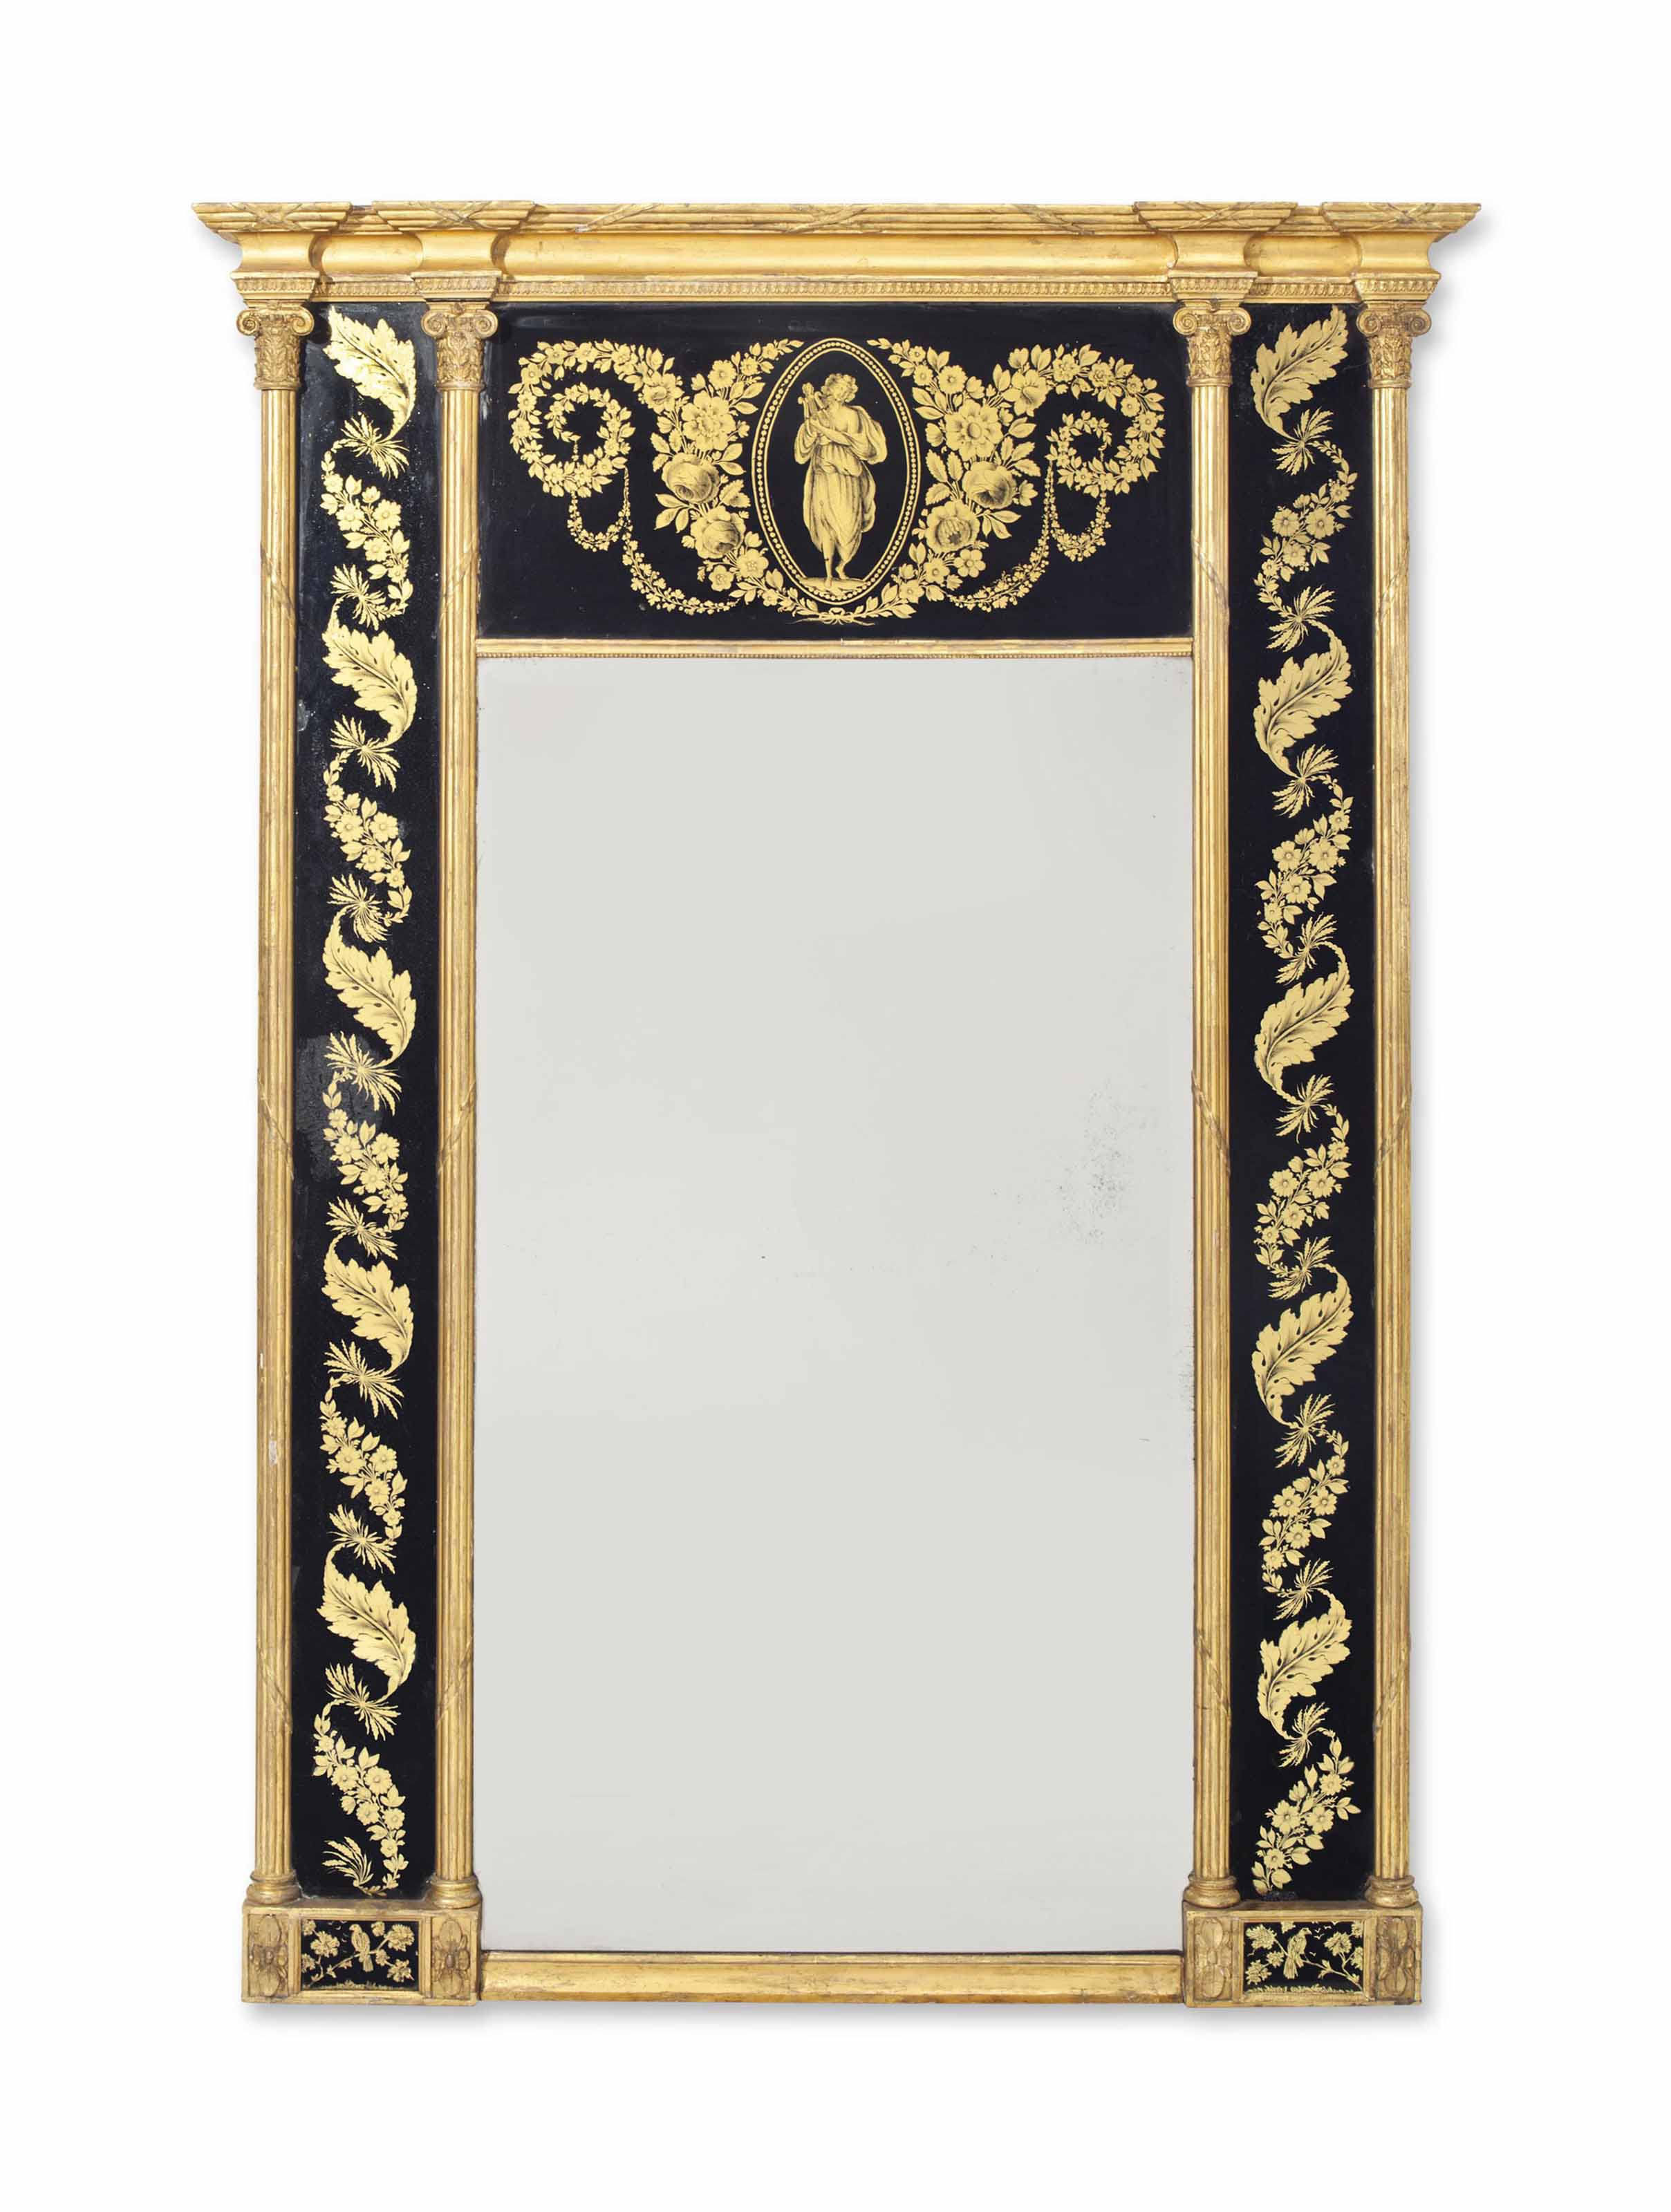 A REGENCY GILTWOOD GILT-COMPOSITION AND VERRE EGLOMISE MIRROR